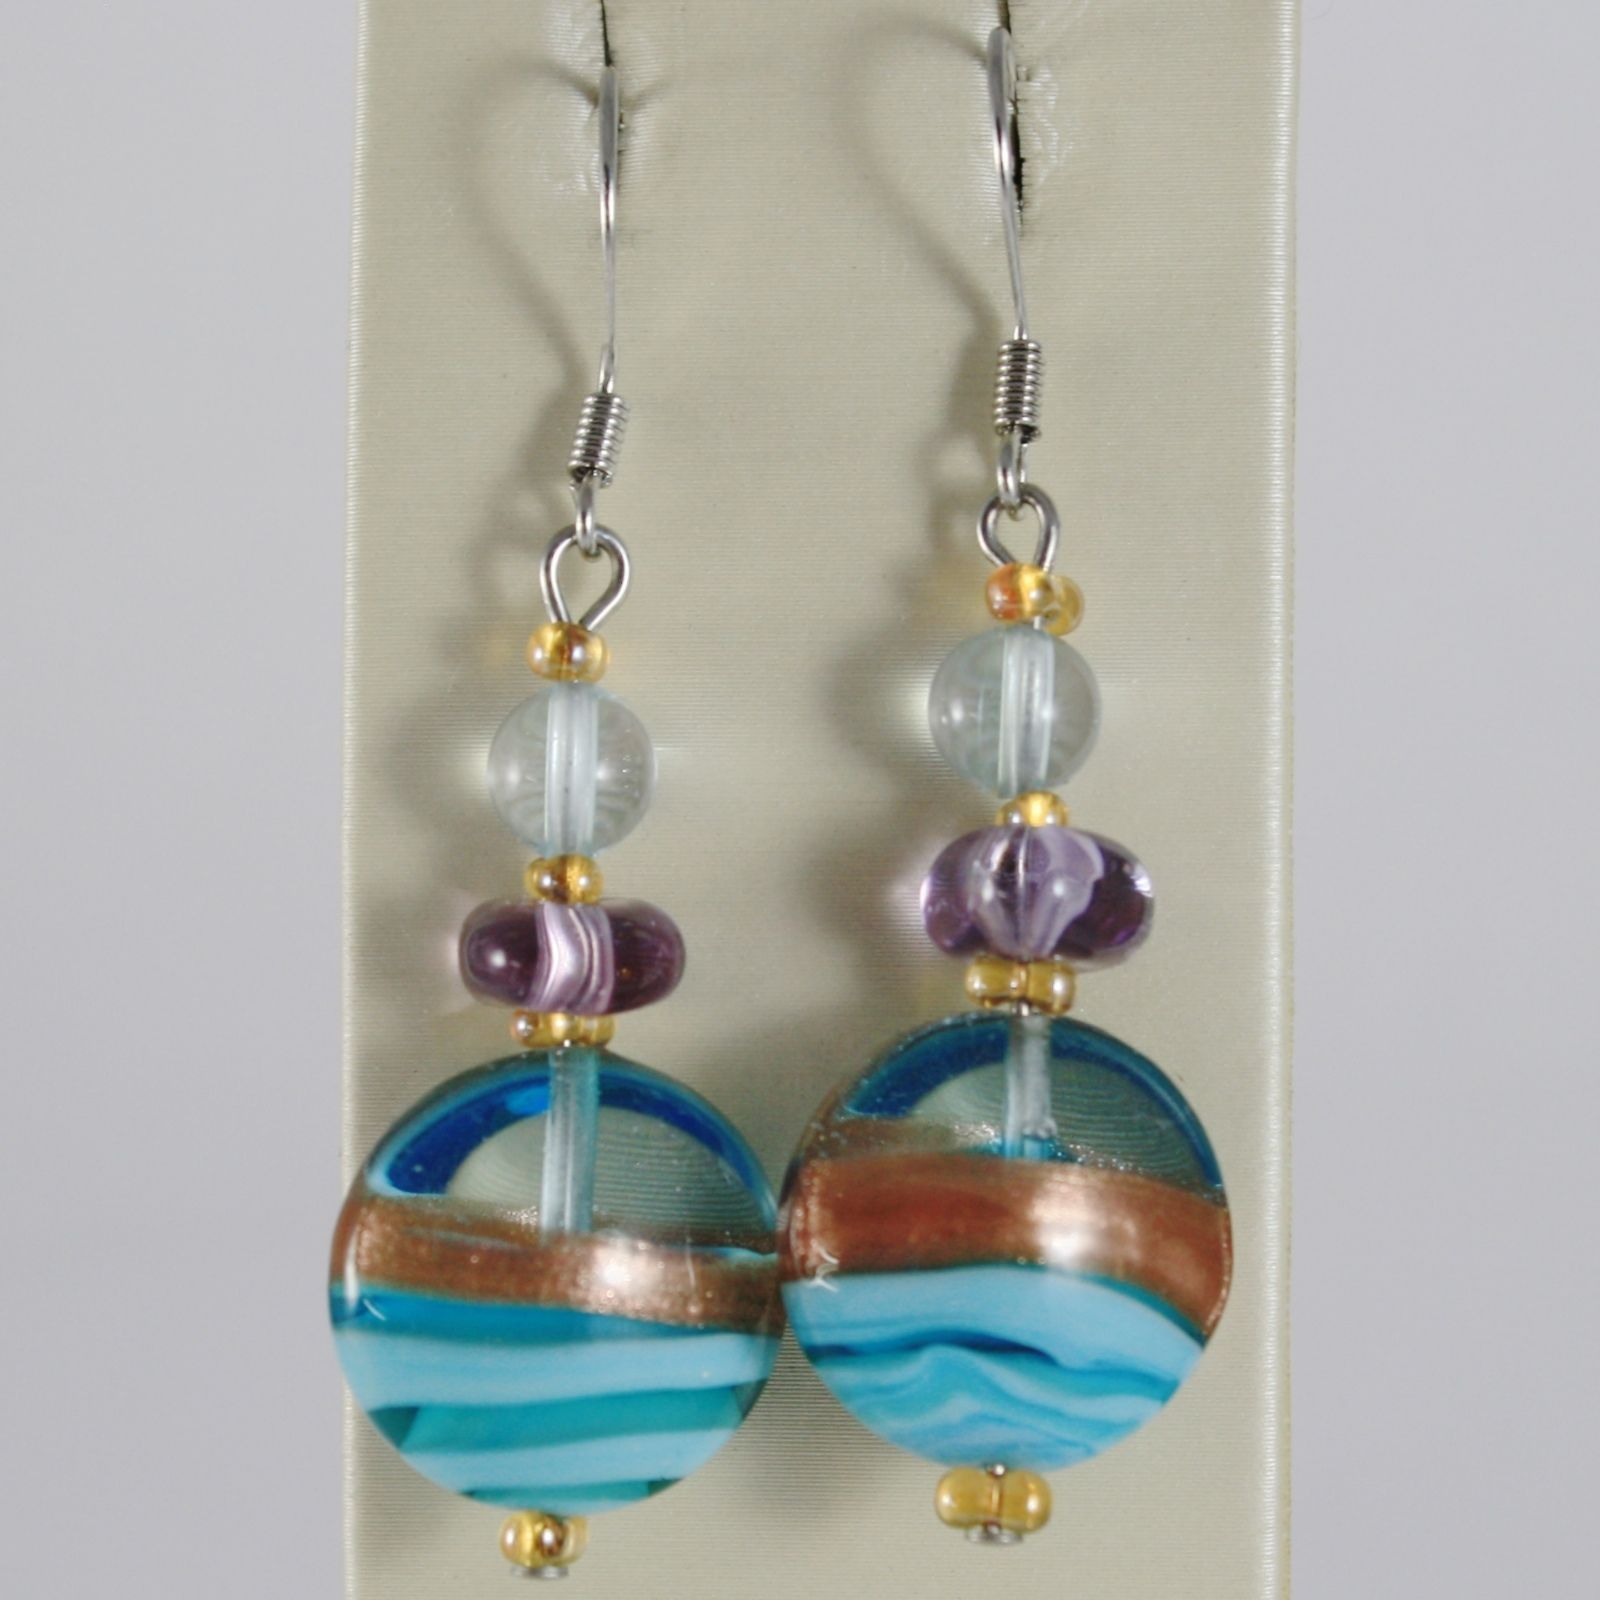 EARRINGS ANTICA MURRINA VENEZIA WITH MURANO GLASS BLUE PURPLE YELLOW OR343A07